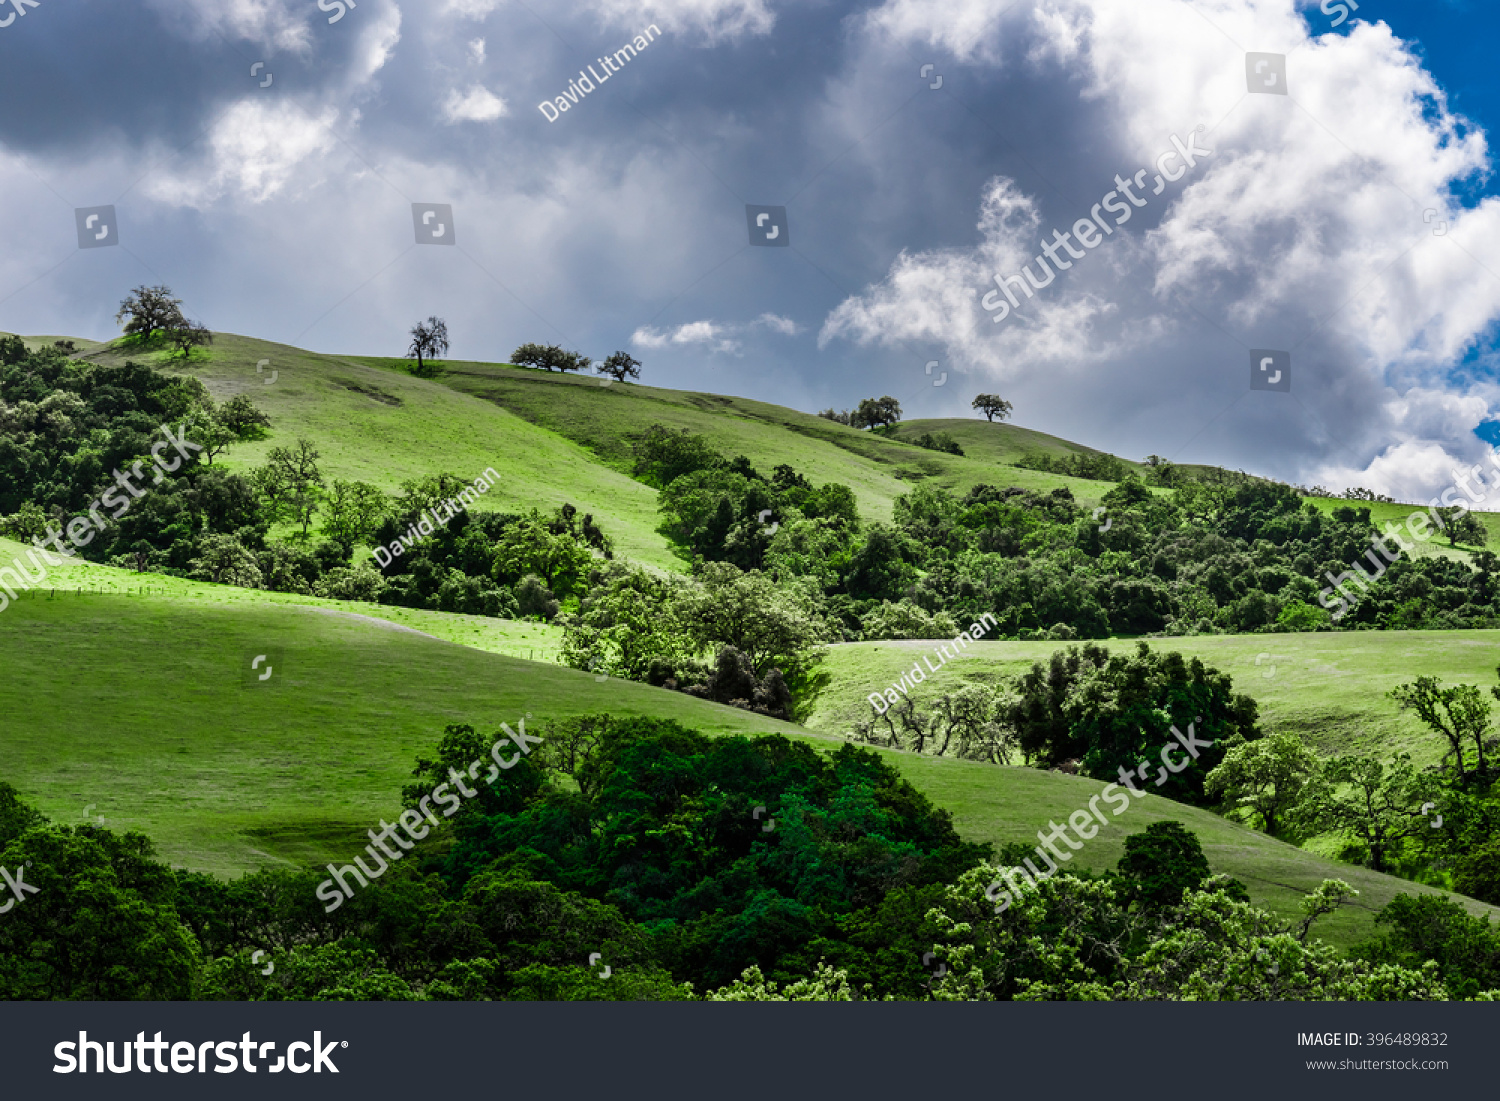 A scenic panoramic view of rolling grass covered hills with coastal live oak trees in Carmel Valley, in Monterey Countty, California, with clearing clouds as a storm passes by.